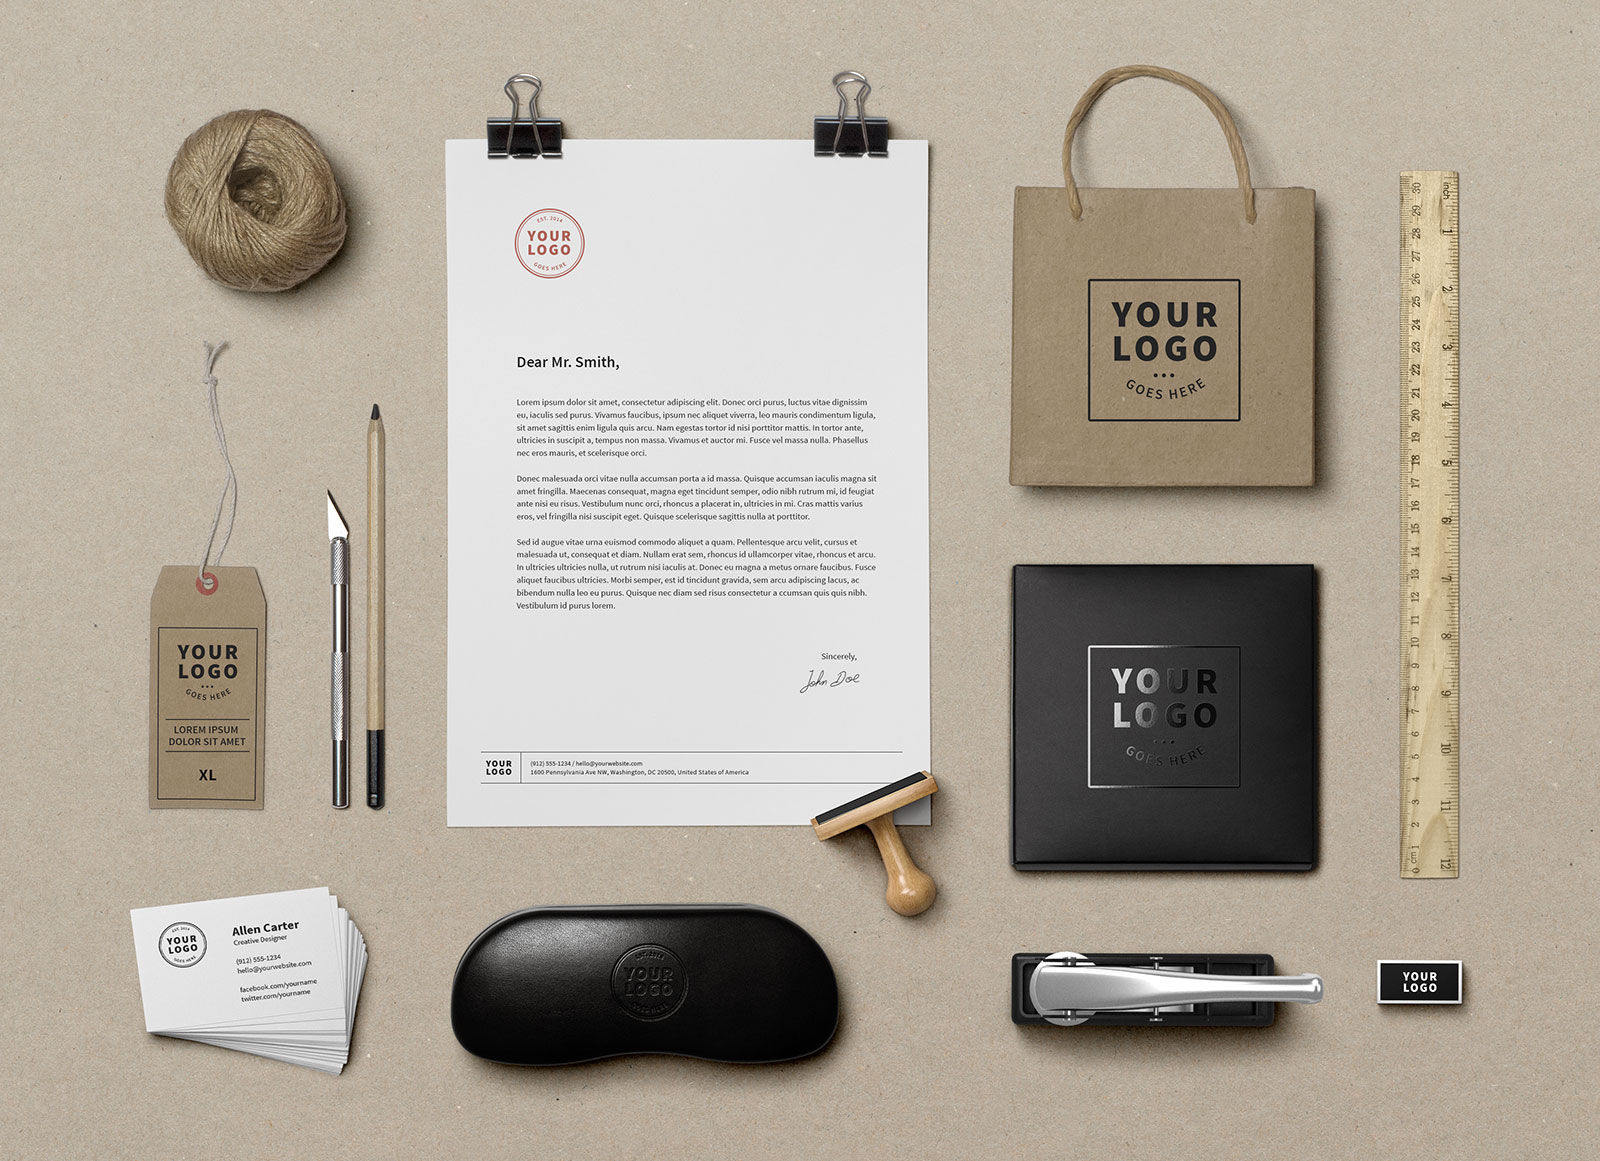 Free-Premium-Corporate-Identity-Mockup---Stationary-Mockup-PSD